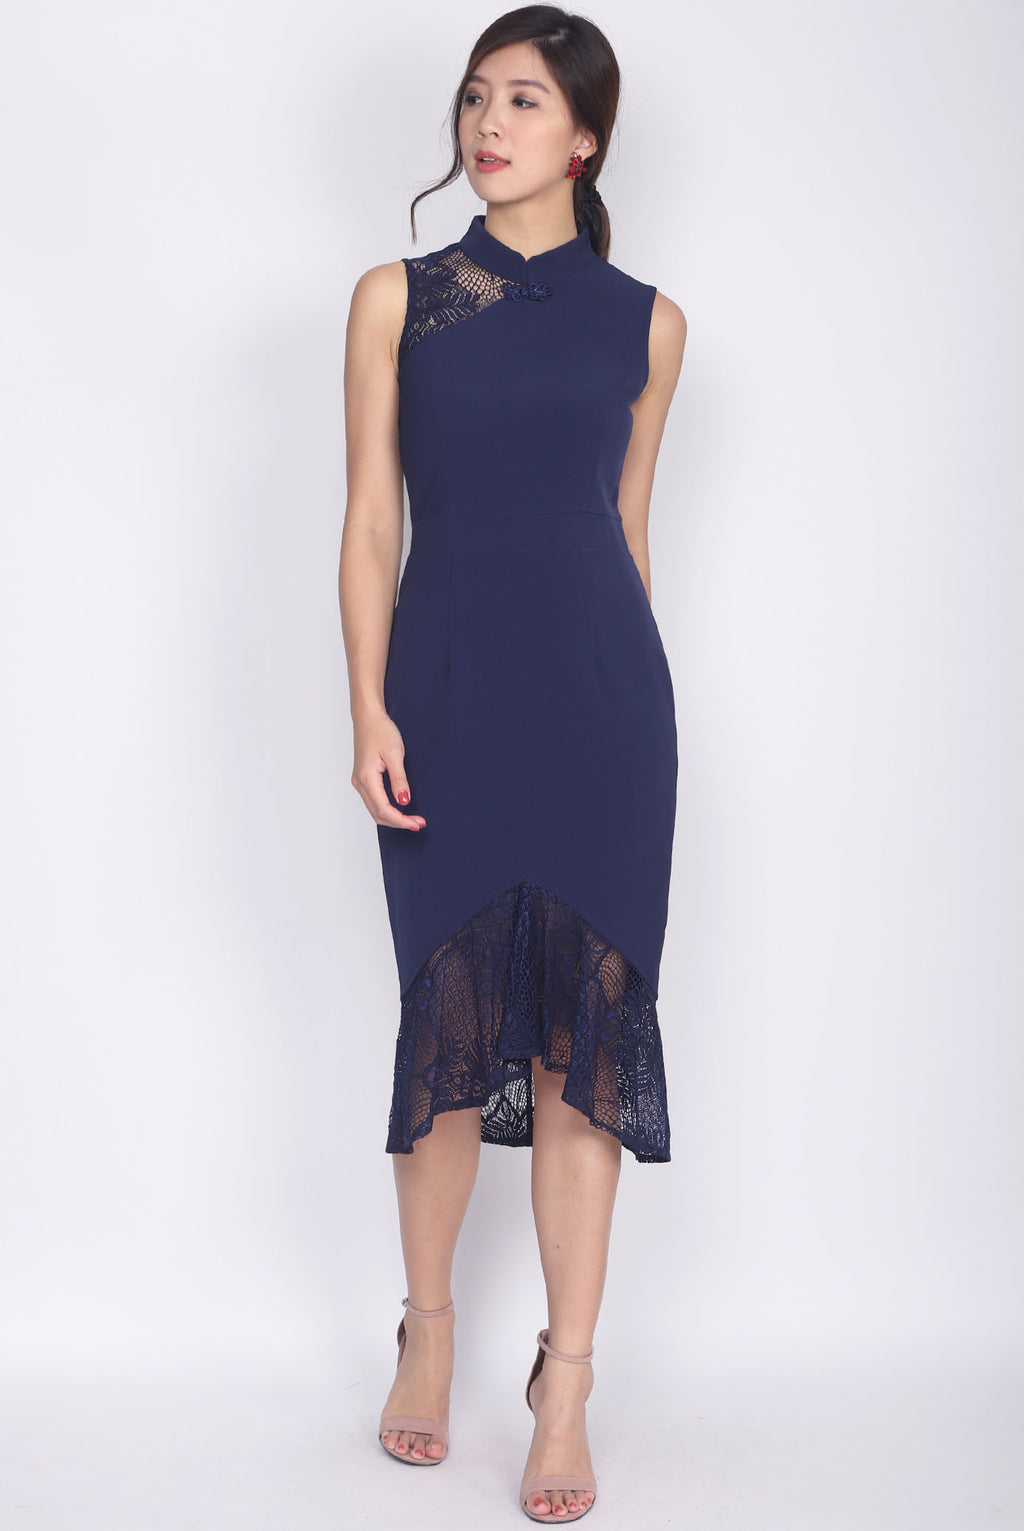 *Premium* Hermila Lace Mermaid Cheong Sam Dress In Navy Blue